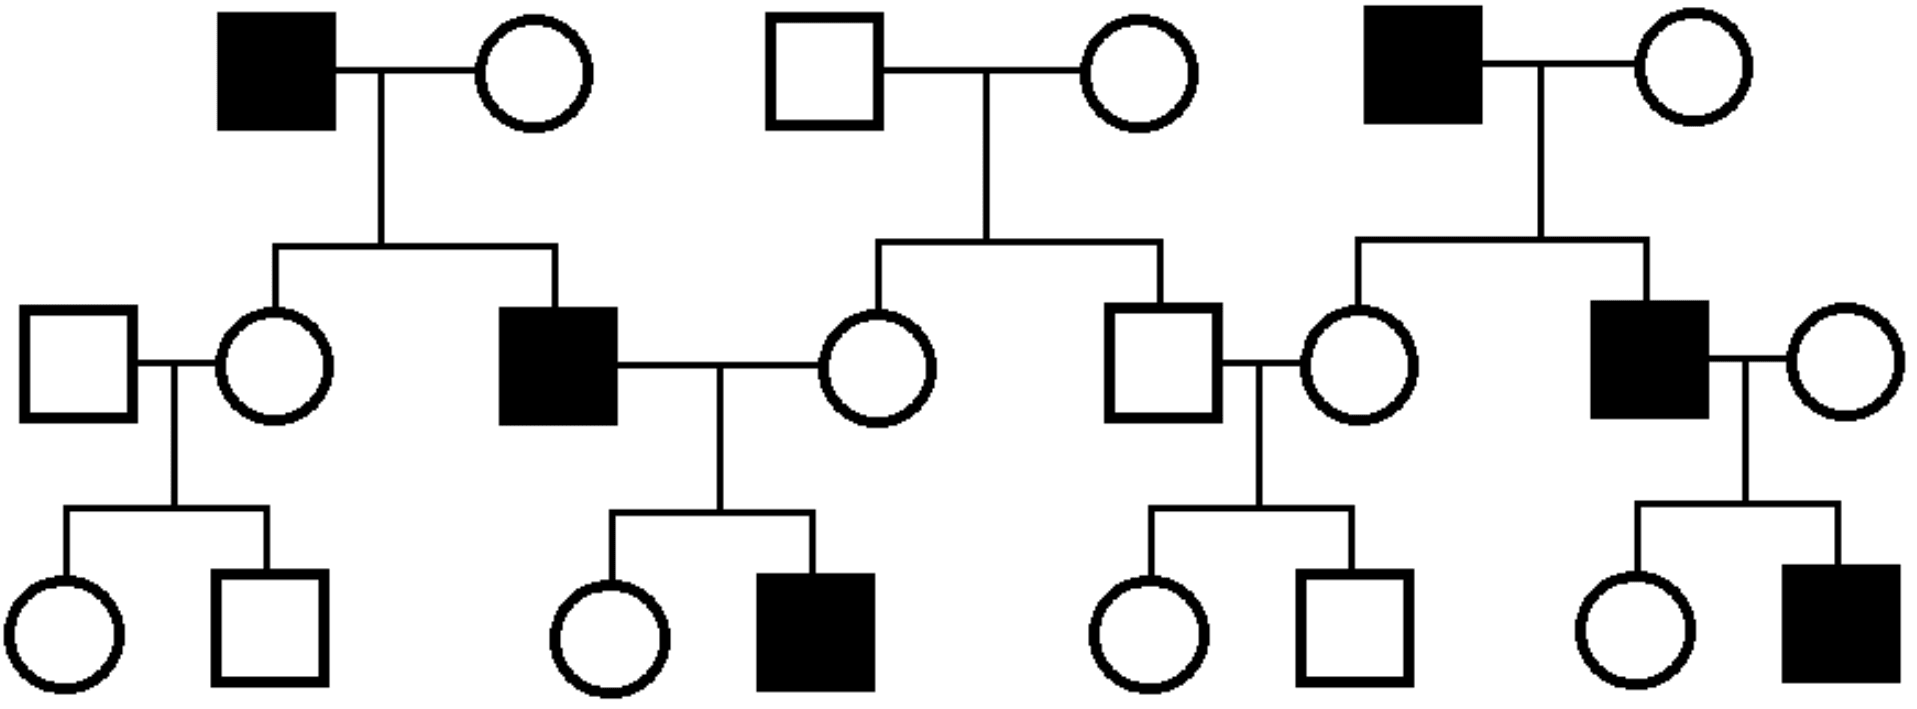 Y-Linked Pedigree Chart SimpleMed